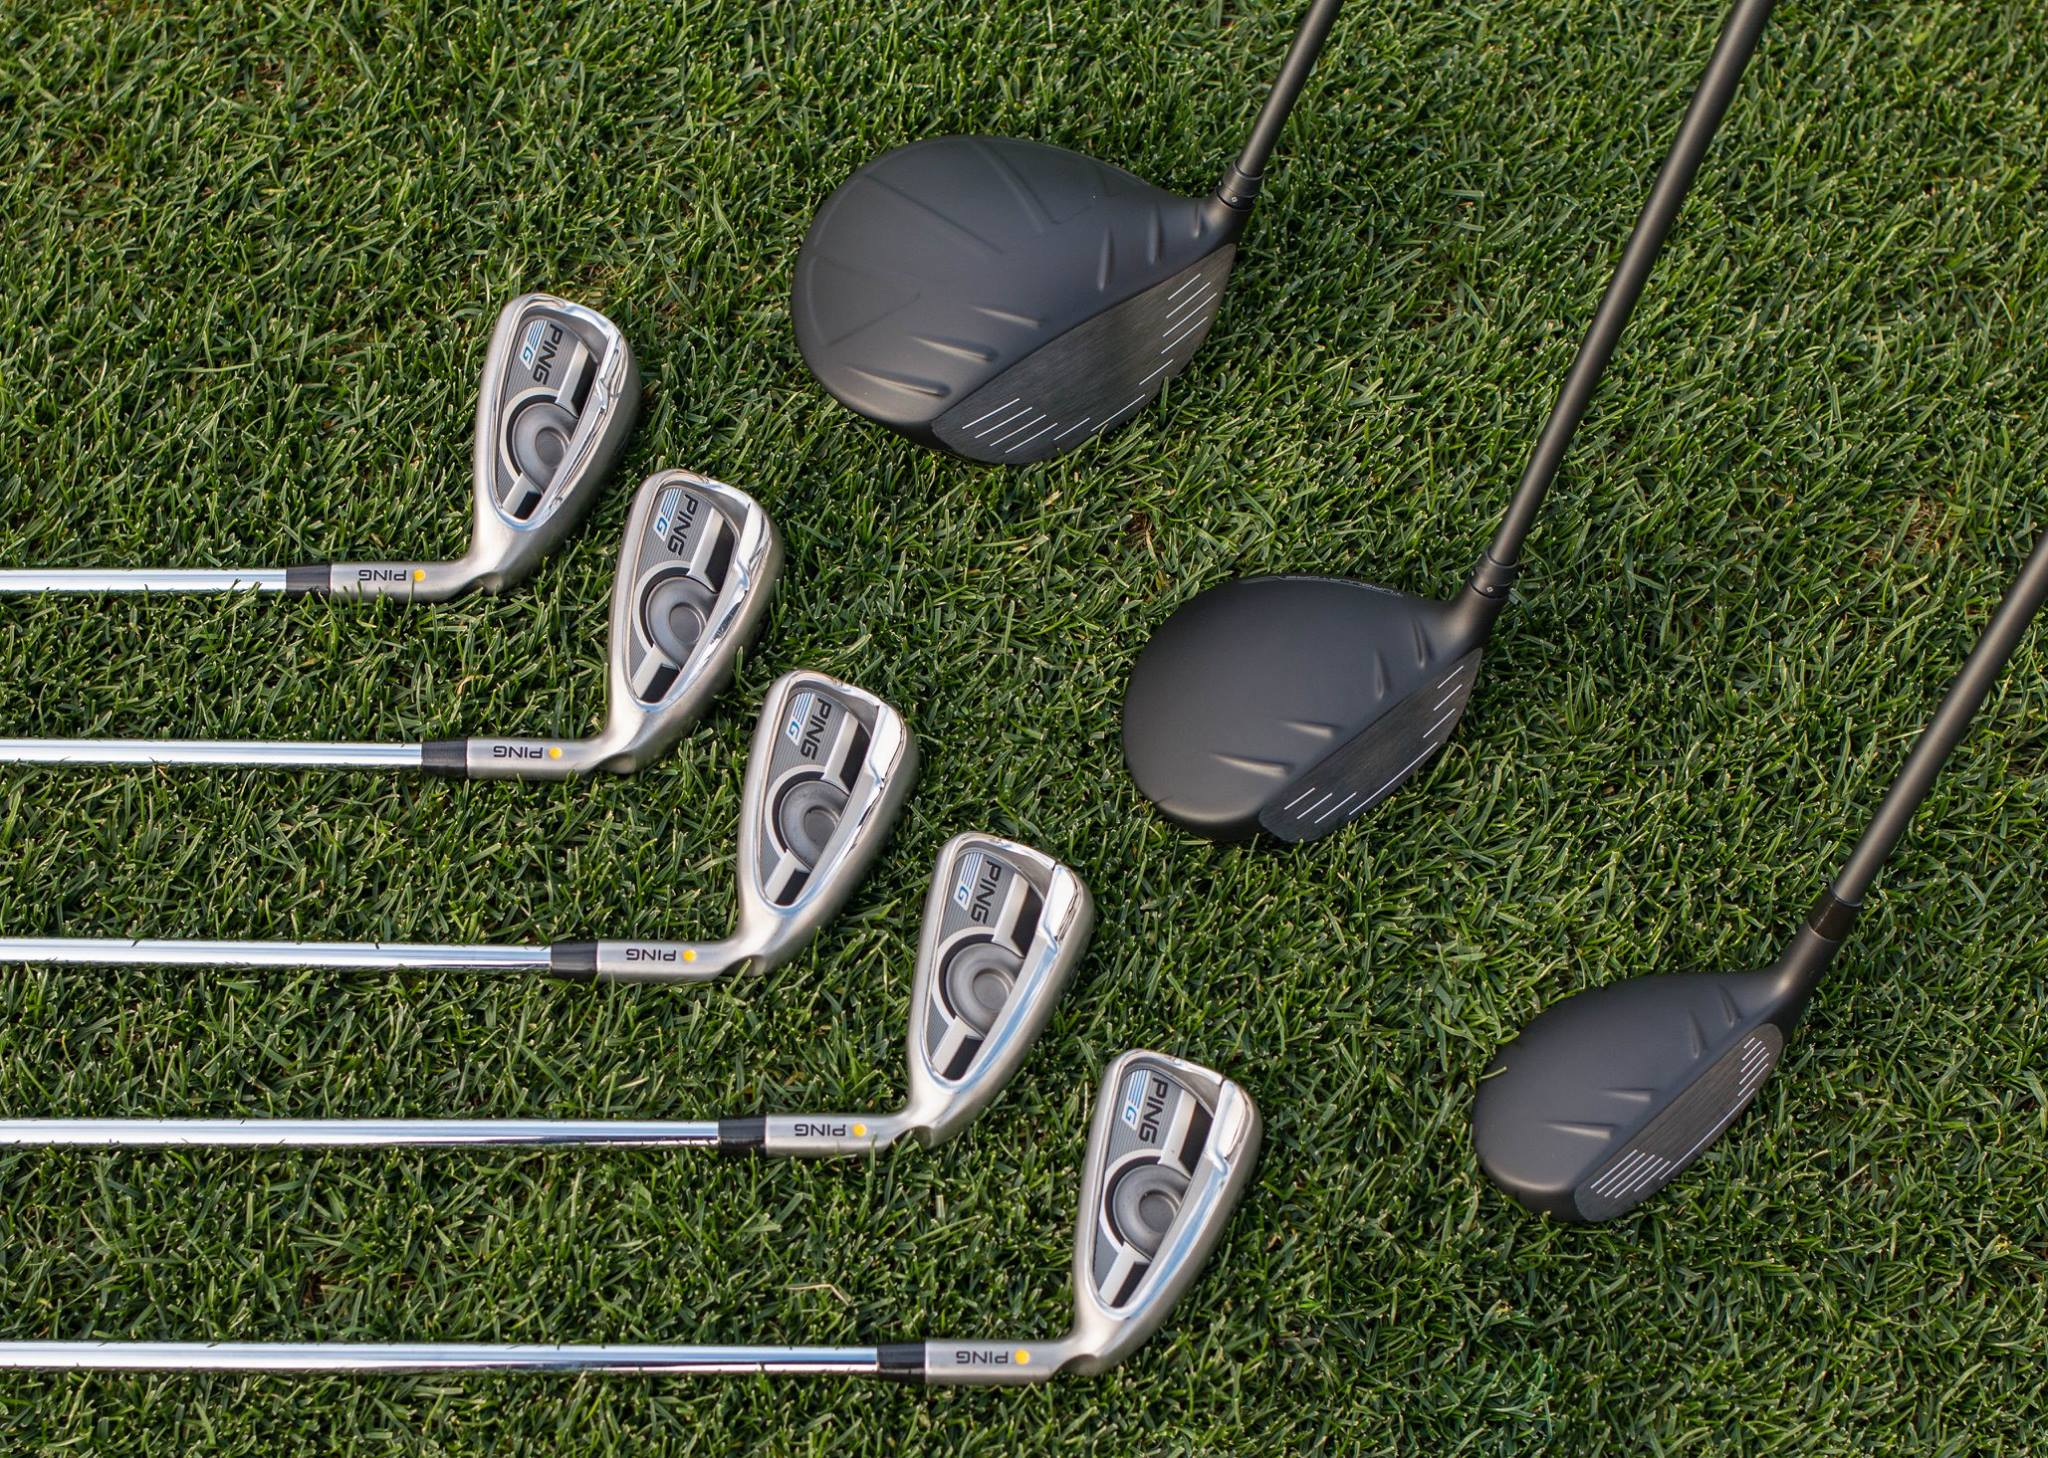 Ping g series drivers ping g series irons ping g series woods golf - Ping G Irons Hybrids Crossovers By Ed Travis Posted On March 1 2016